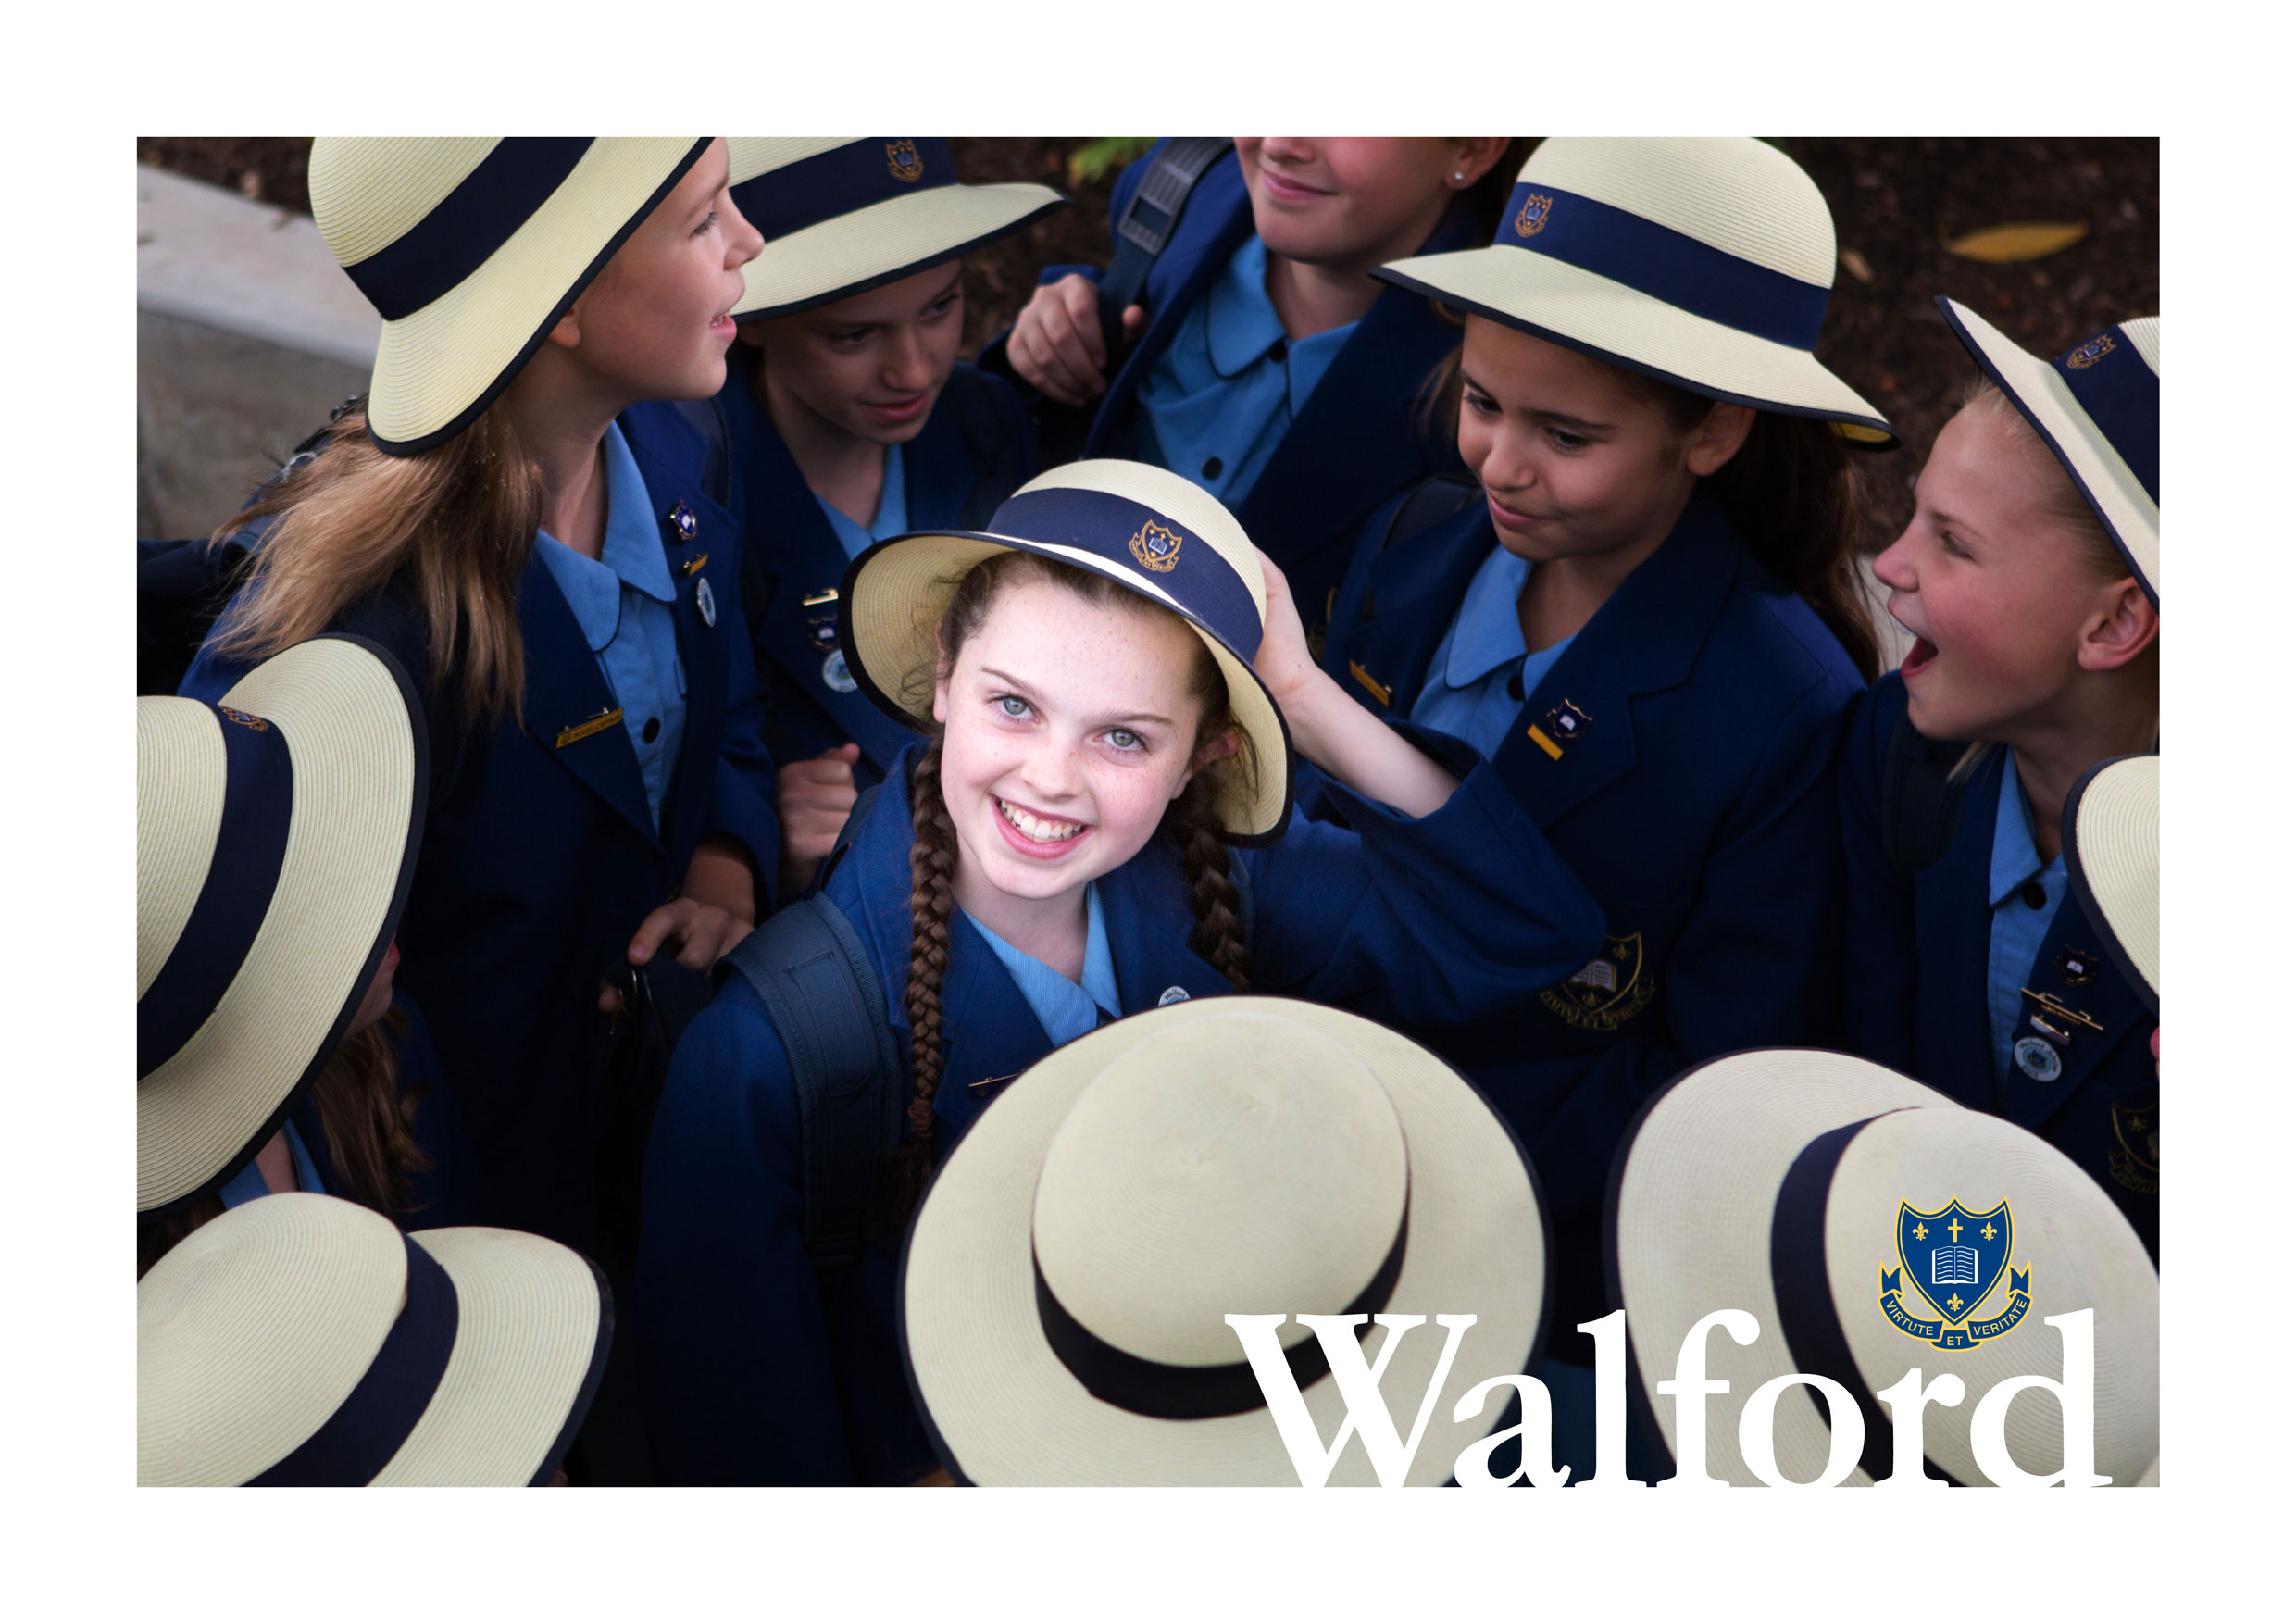 WALFORD-BRANDING-IMAGES_6